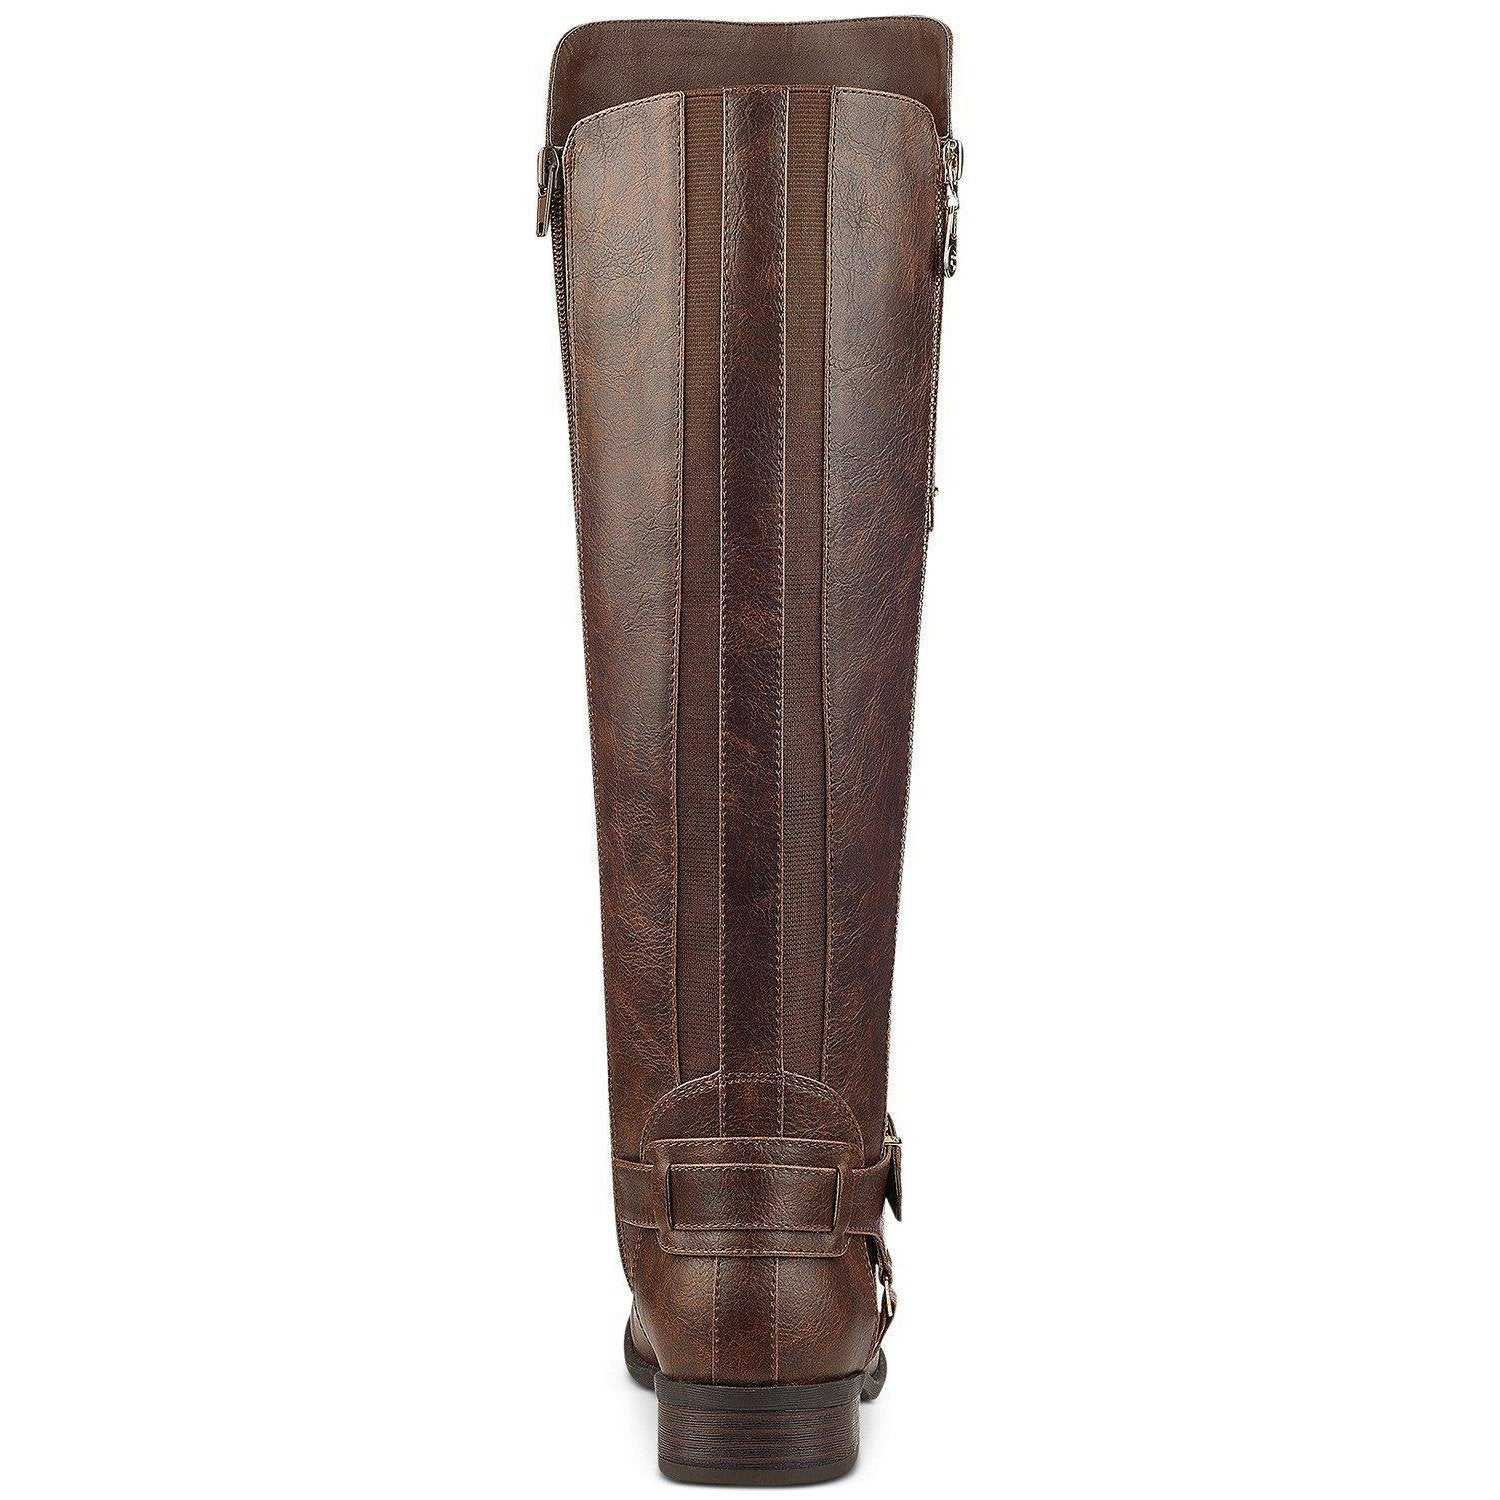 G by Guess Harson Wide-Calf Tall Boots Women's Shoes Brown-Shoes-G By Guess-6-ShoeShock